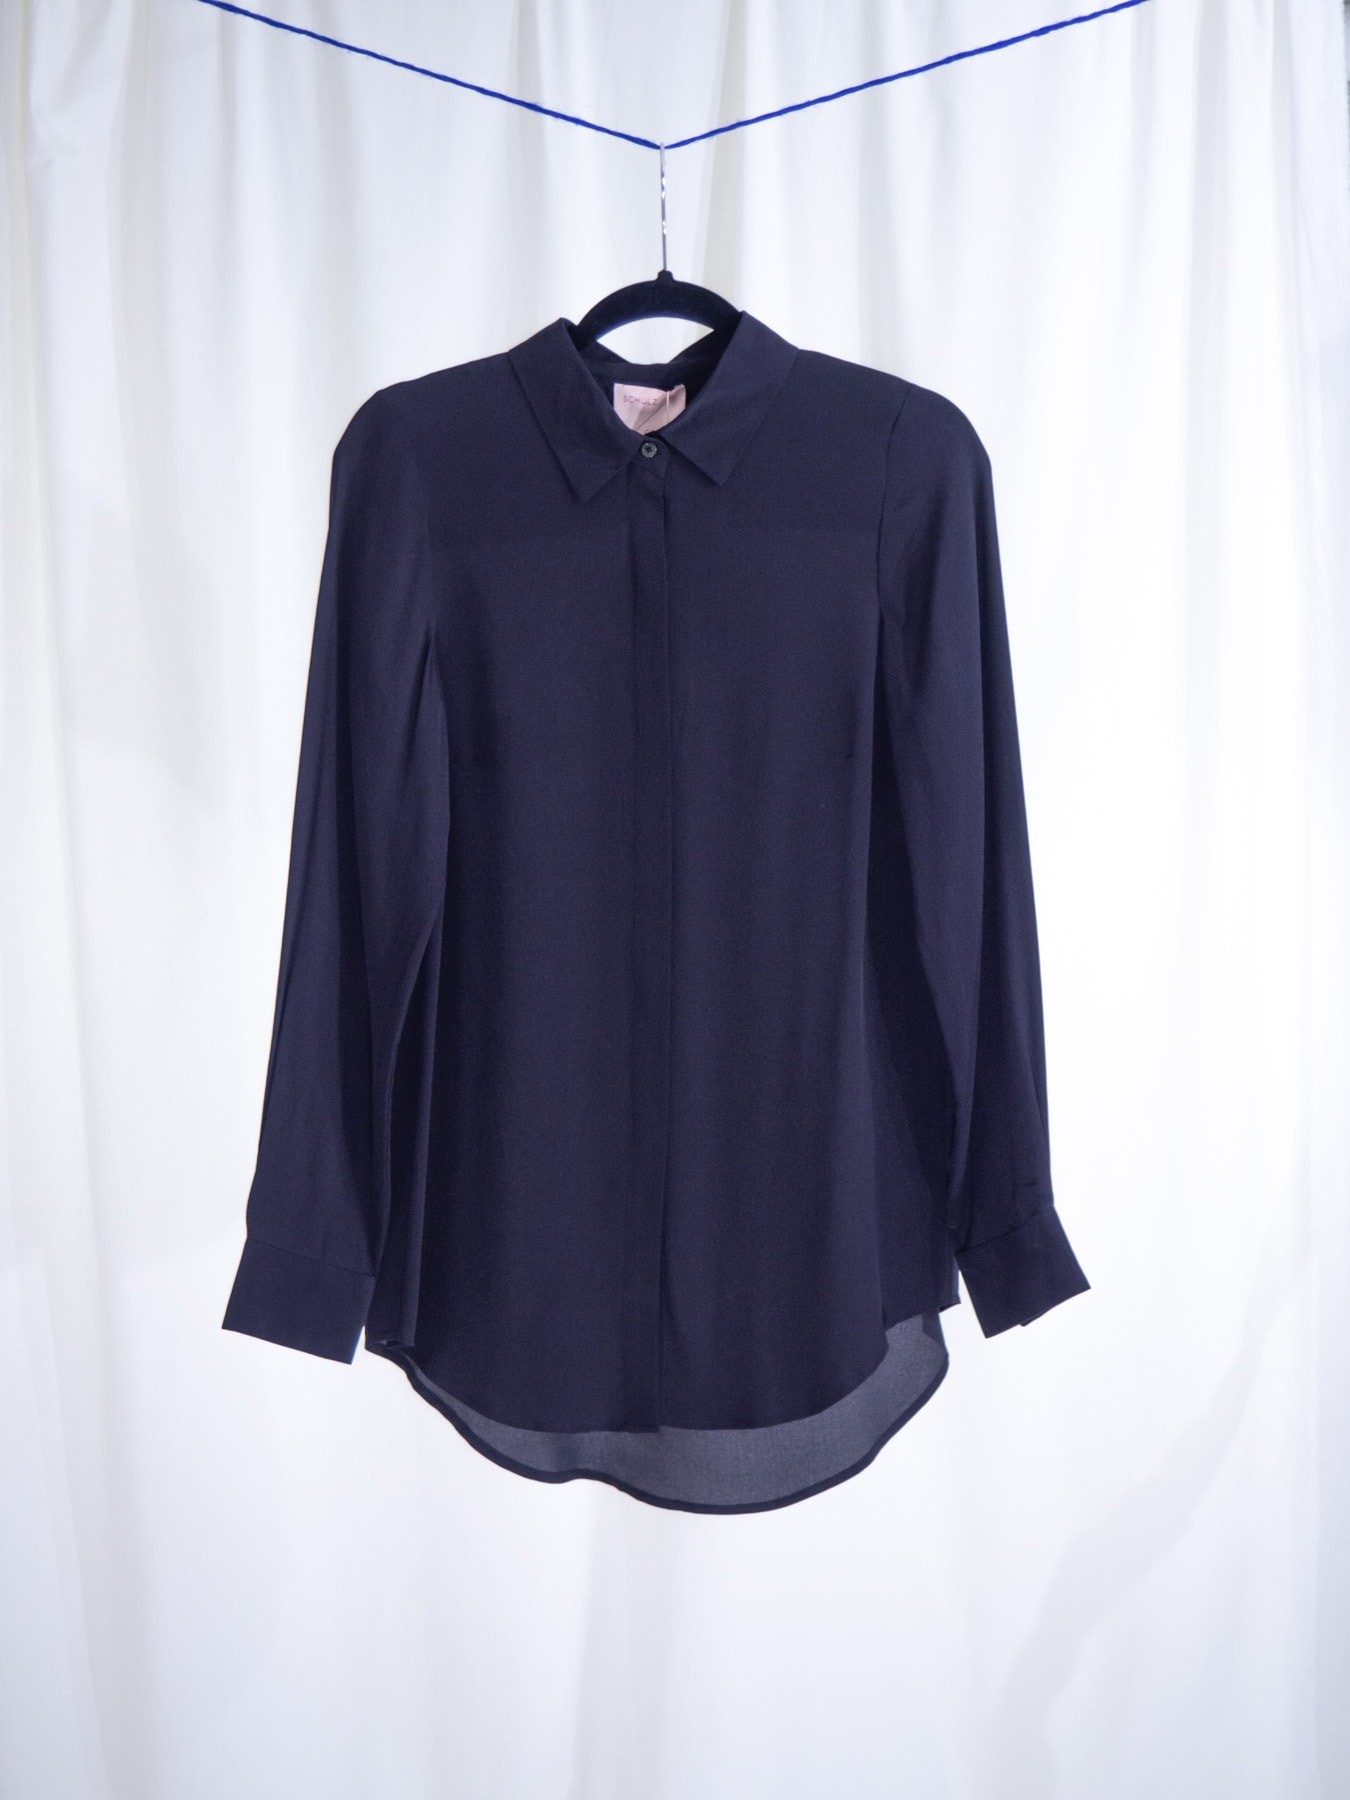 Sally shirt black